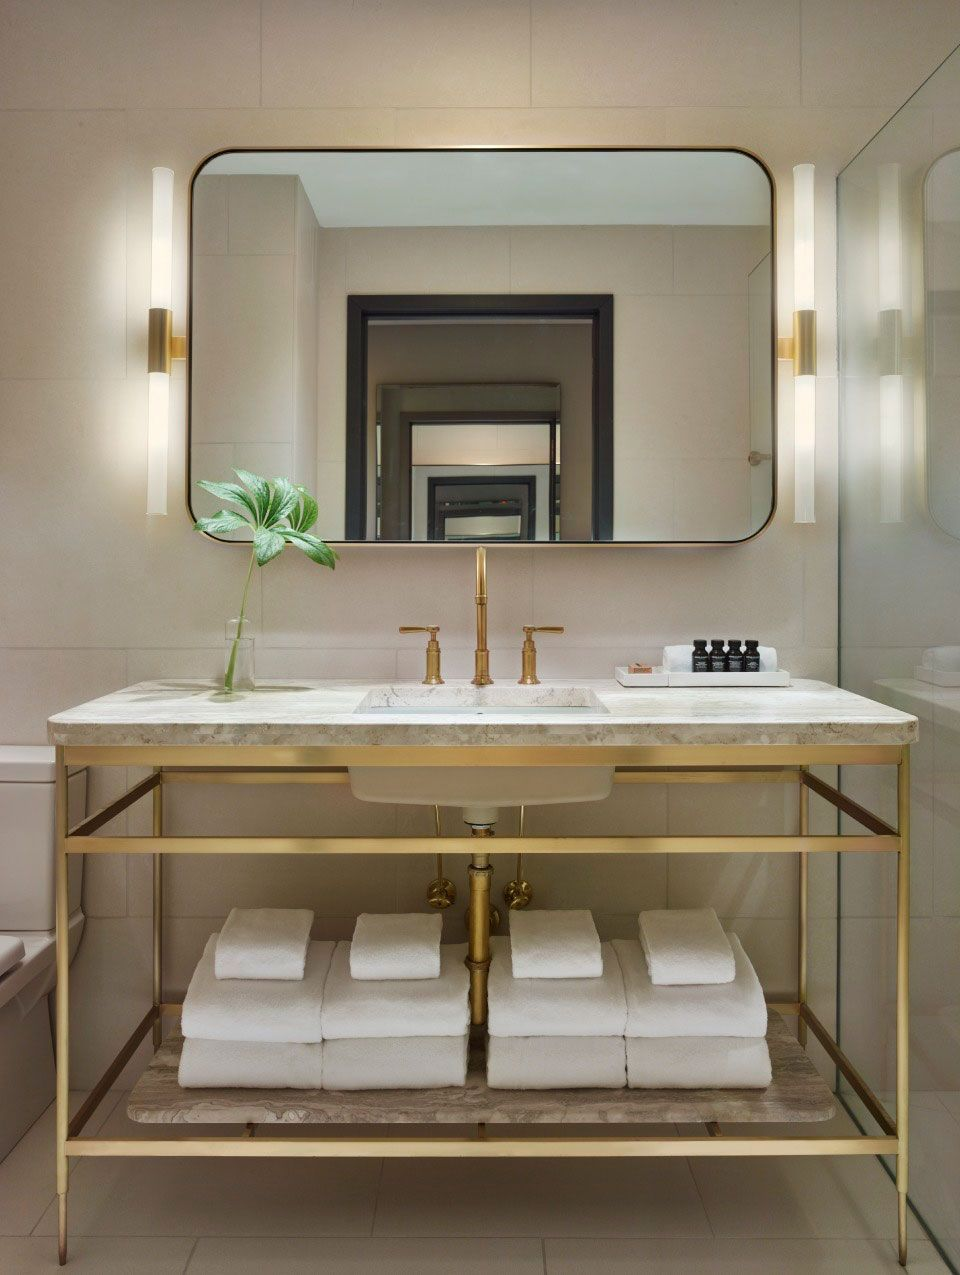 5 star bathroom designs - 25 Best Ideas About Hotels In Bath On Pinterest Bath Hotels Best Hotels In Bath And Hotel Punta